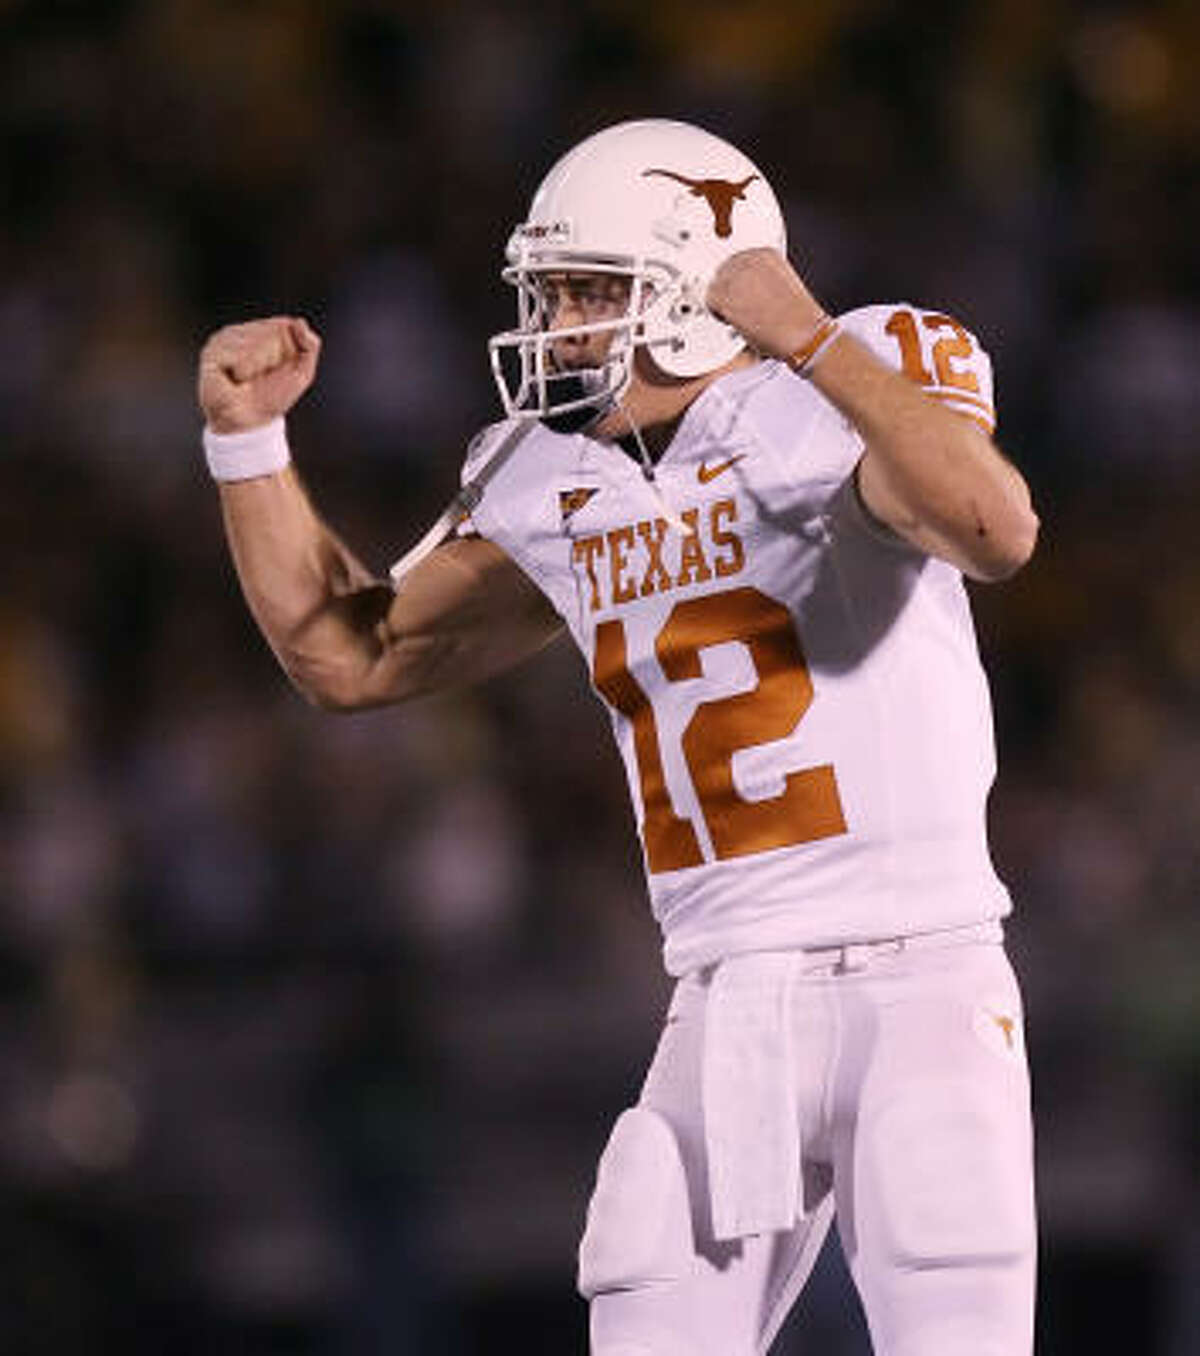 Texas quarterback Colt McCoy celebrates after throwing a touchdown pass to wide receiver Jordan Shipley in the second quarter.